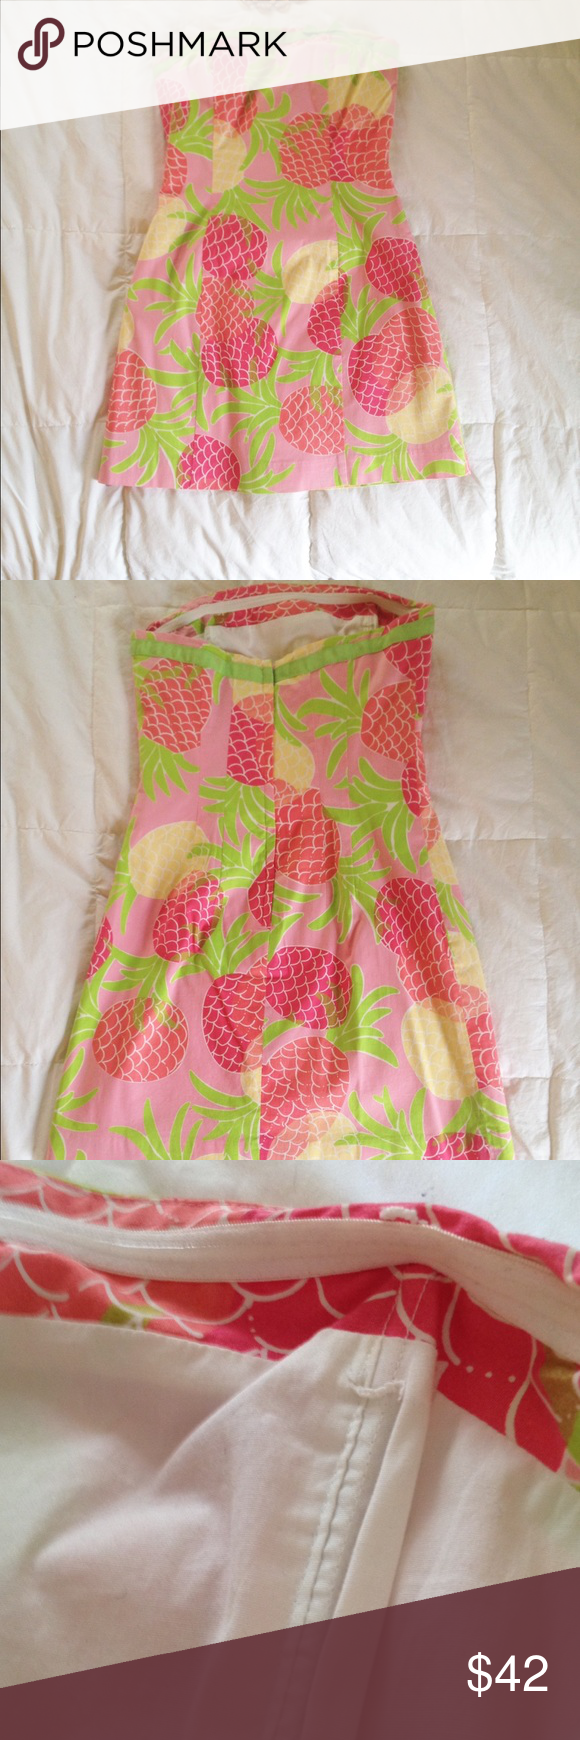 Lilly pulitzer strapless pineapple mini dress pink yellow mini lilly pulitzer strapless pineapple dress in southern hospitality the pineapple is a symbol of welcome biocorpaavc Gallery